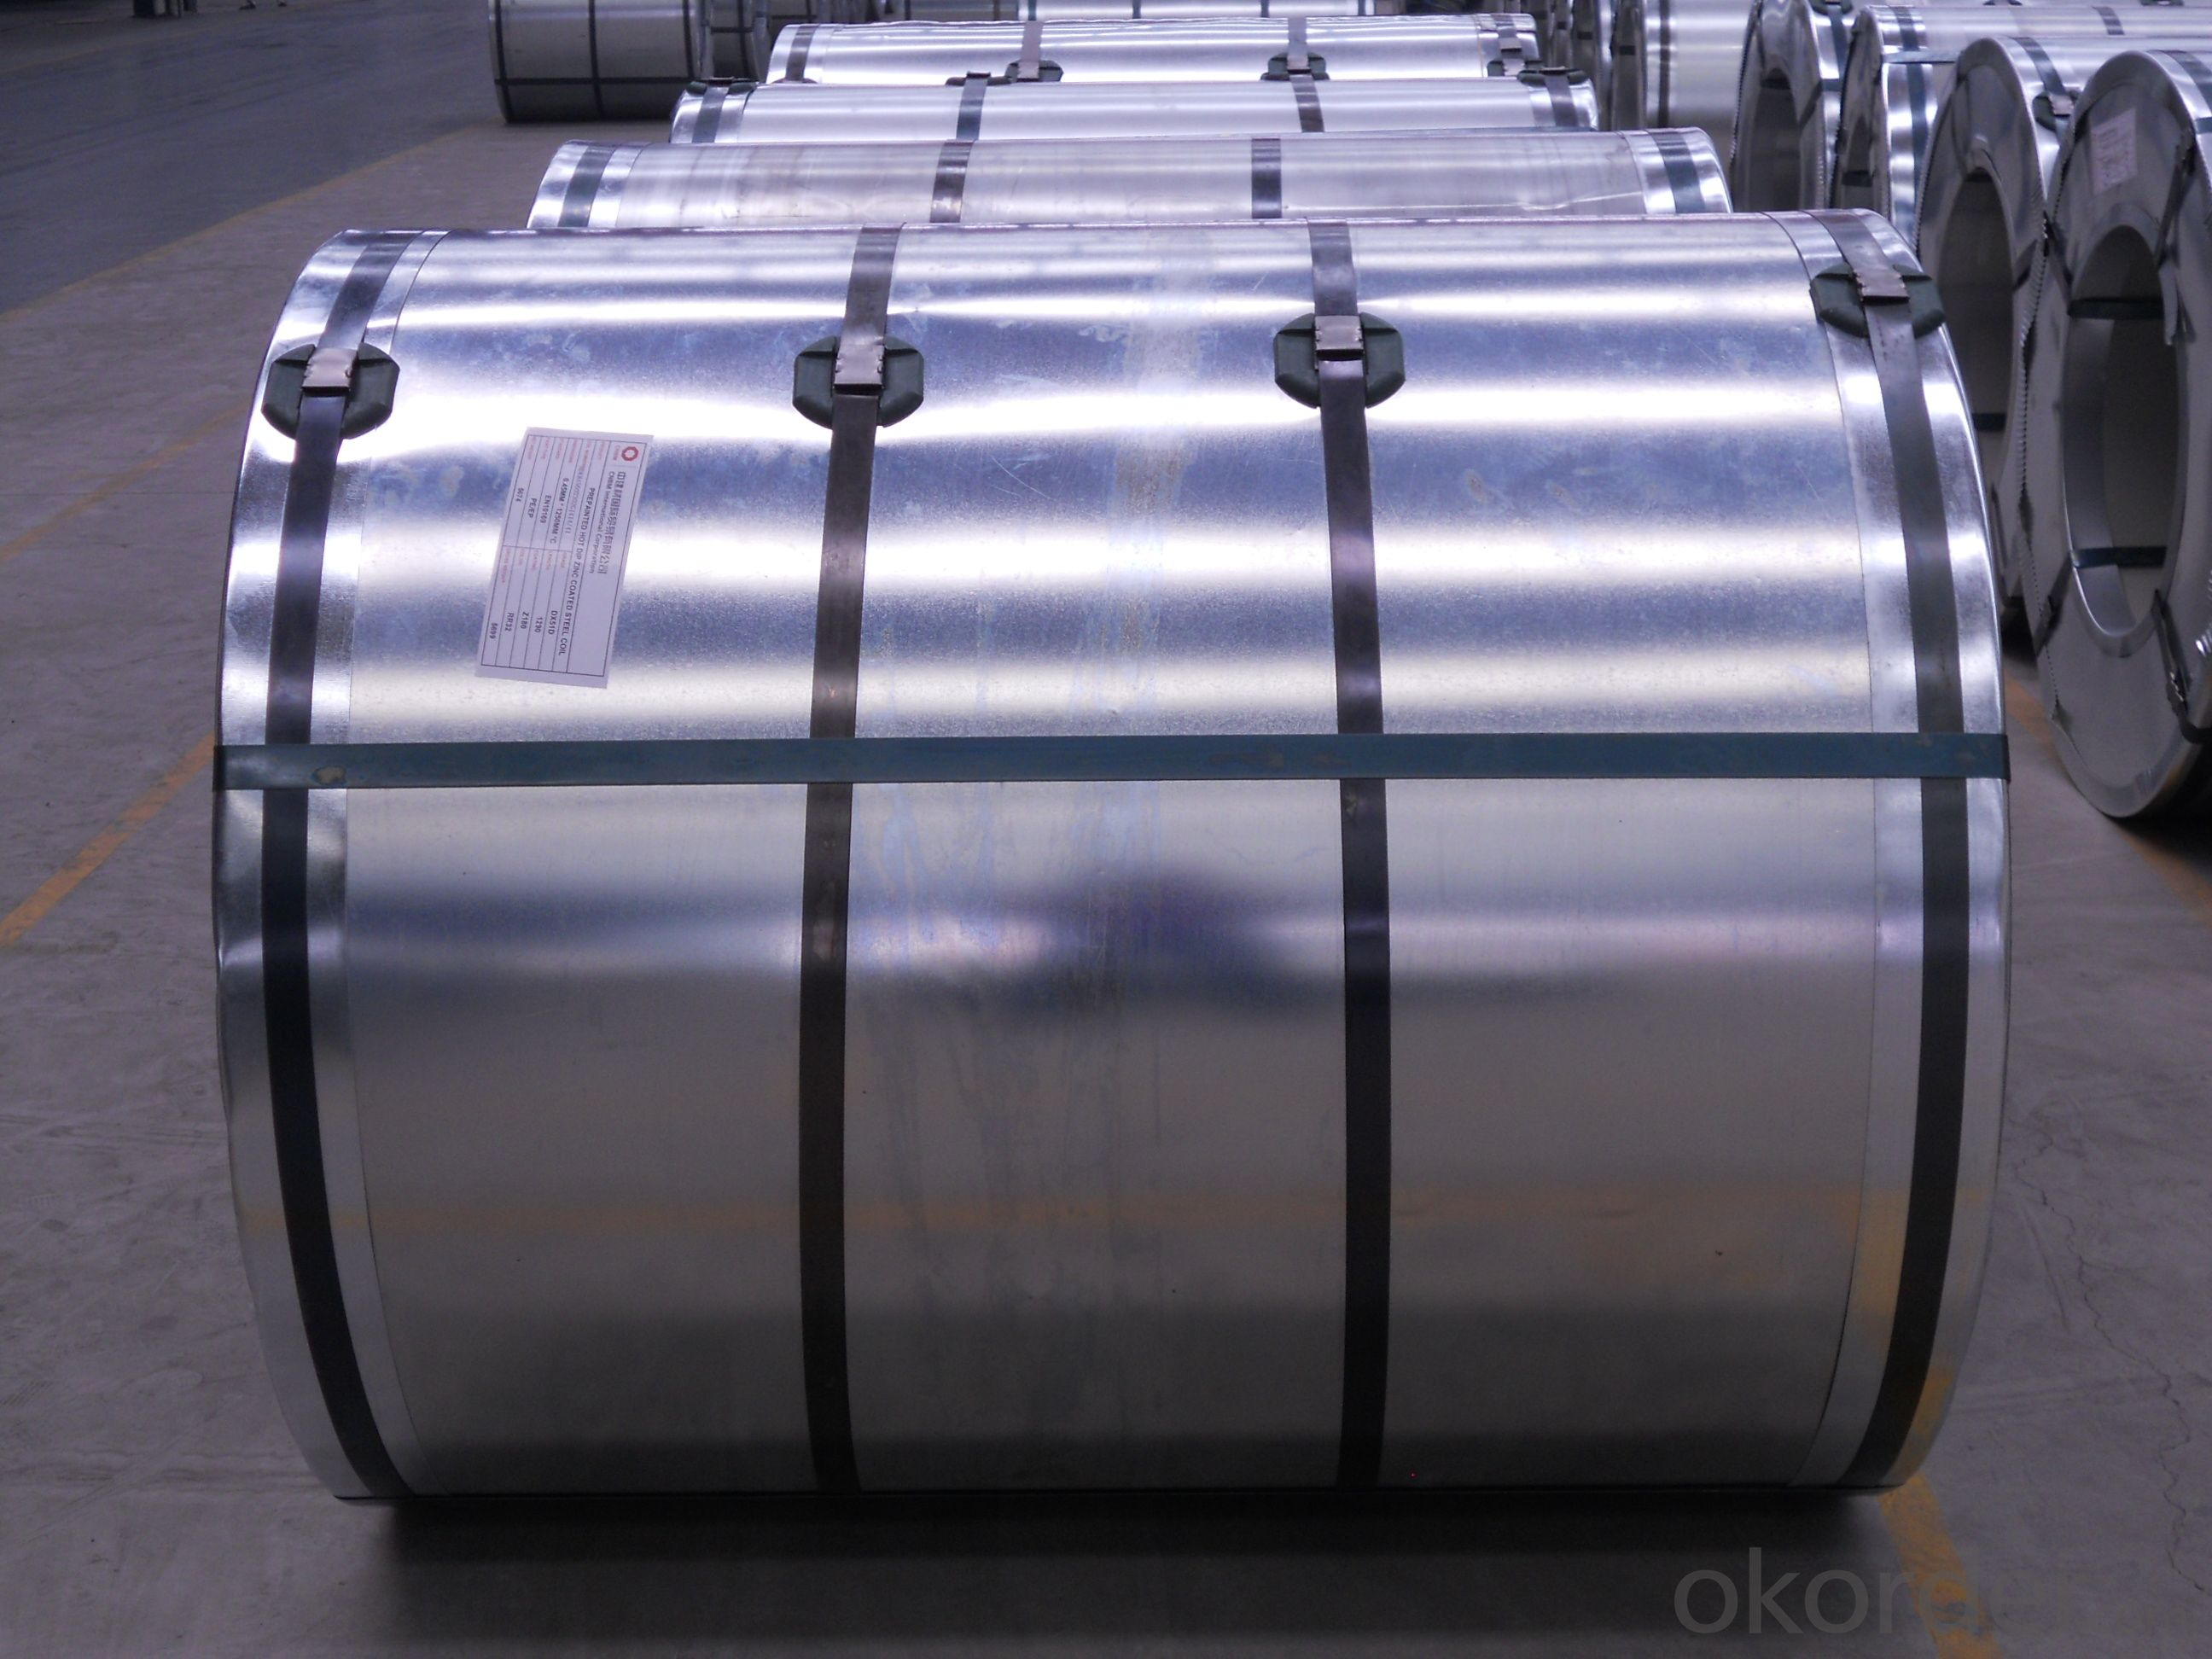 Hot Dipped Galvanized Steel Coil/Sheet-0.3mm*1250mm*C